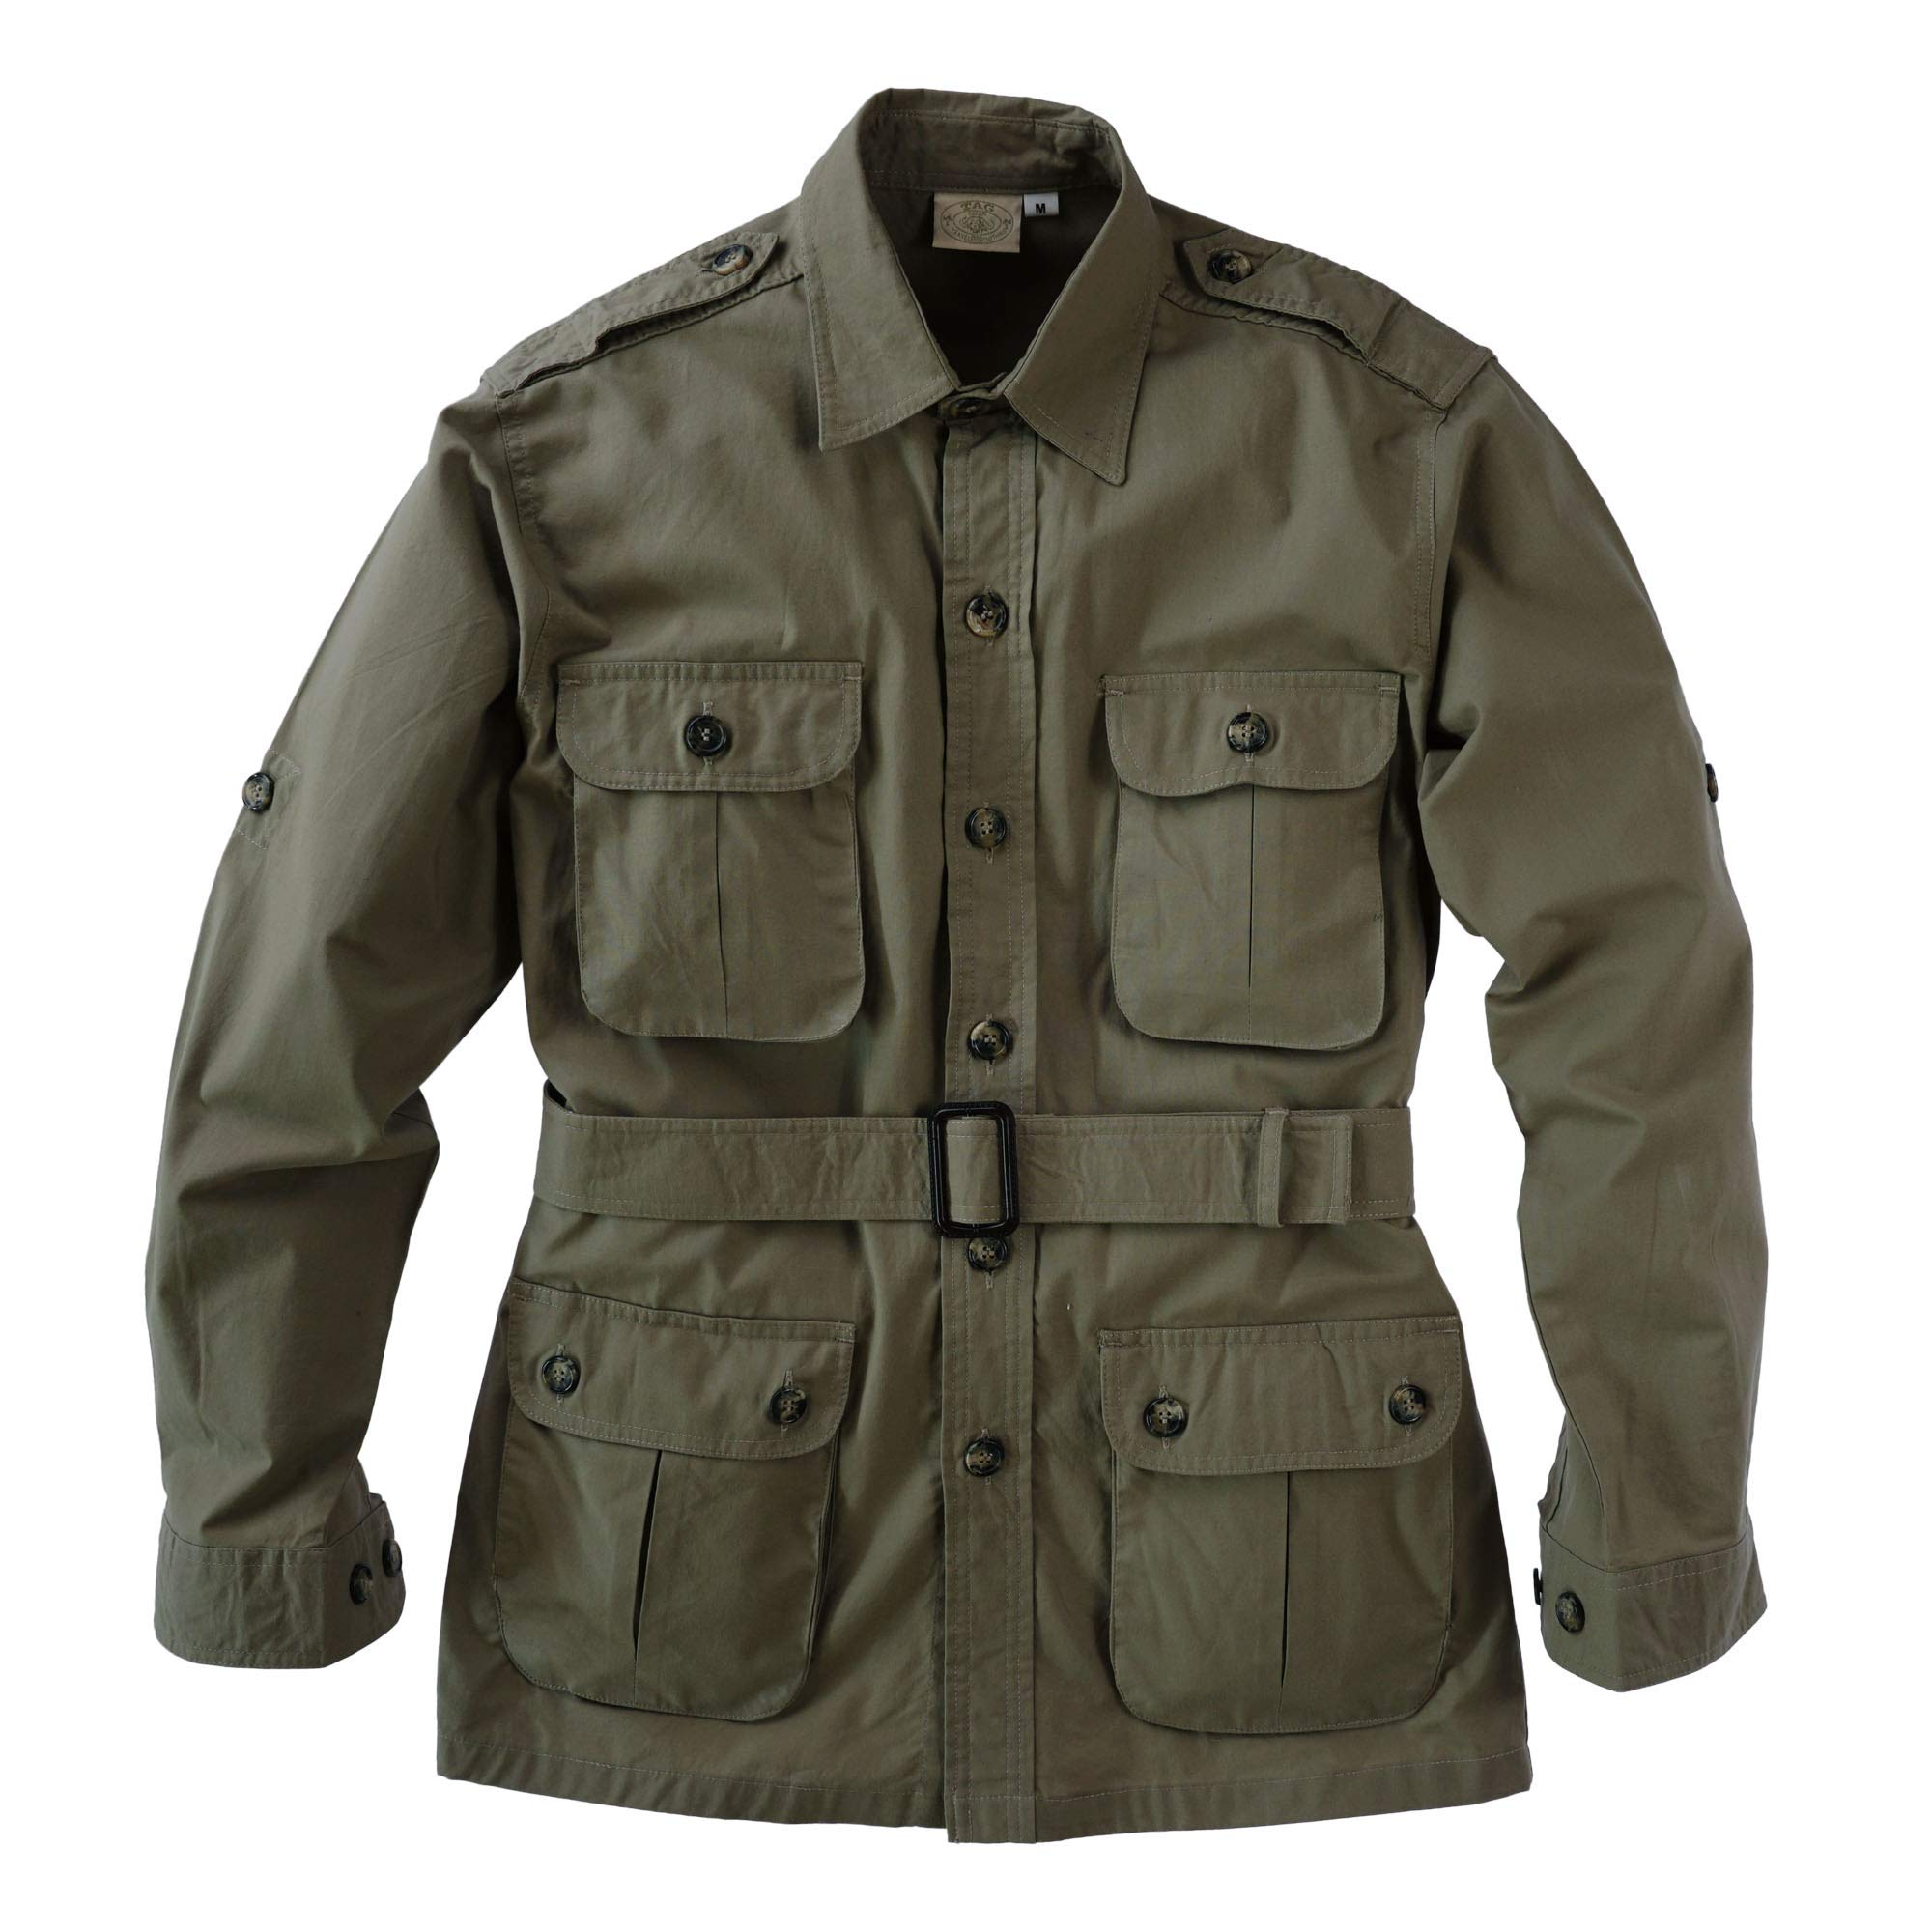 Tag Safari Jacket for Men, Lightweight, Multi Pockets, Perfect for Explorers, Photographers and Journalists by Tag Safari